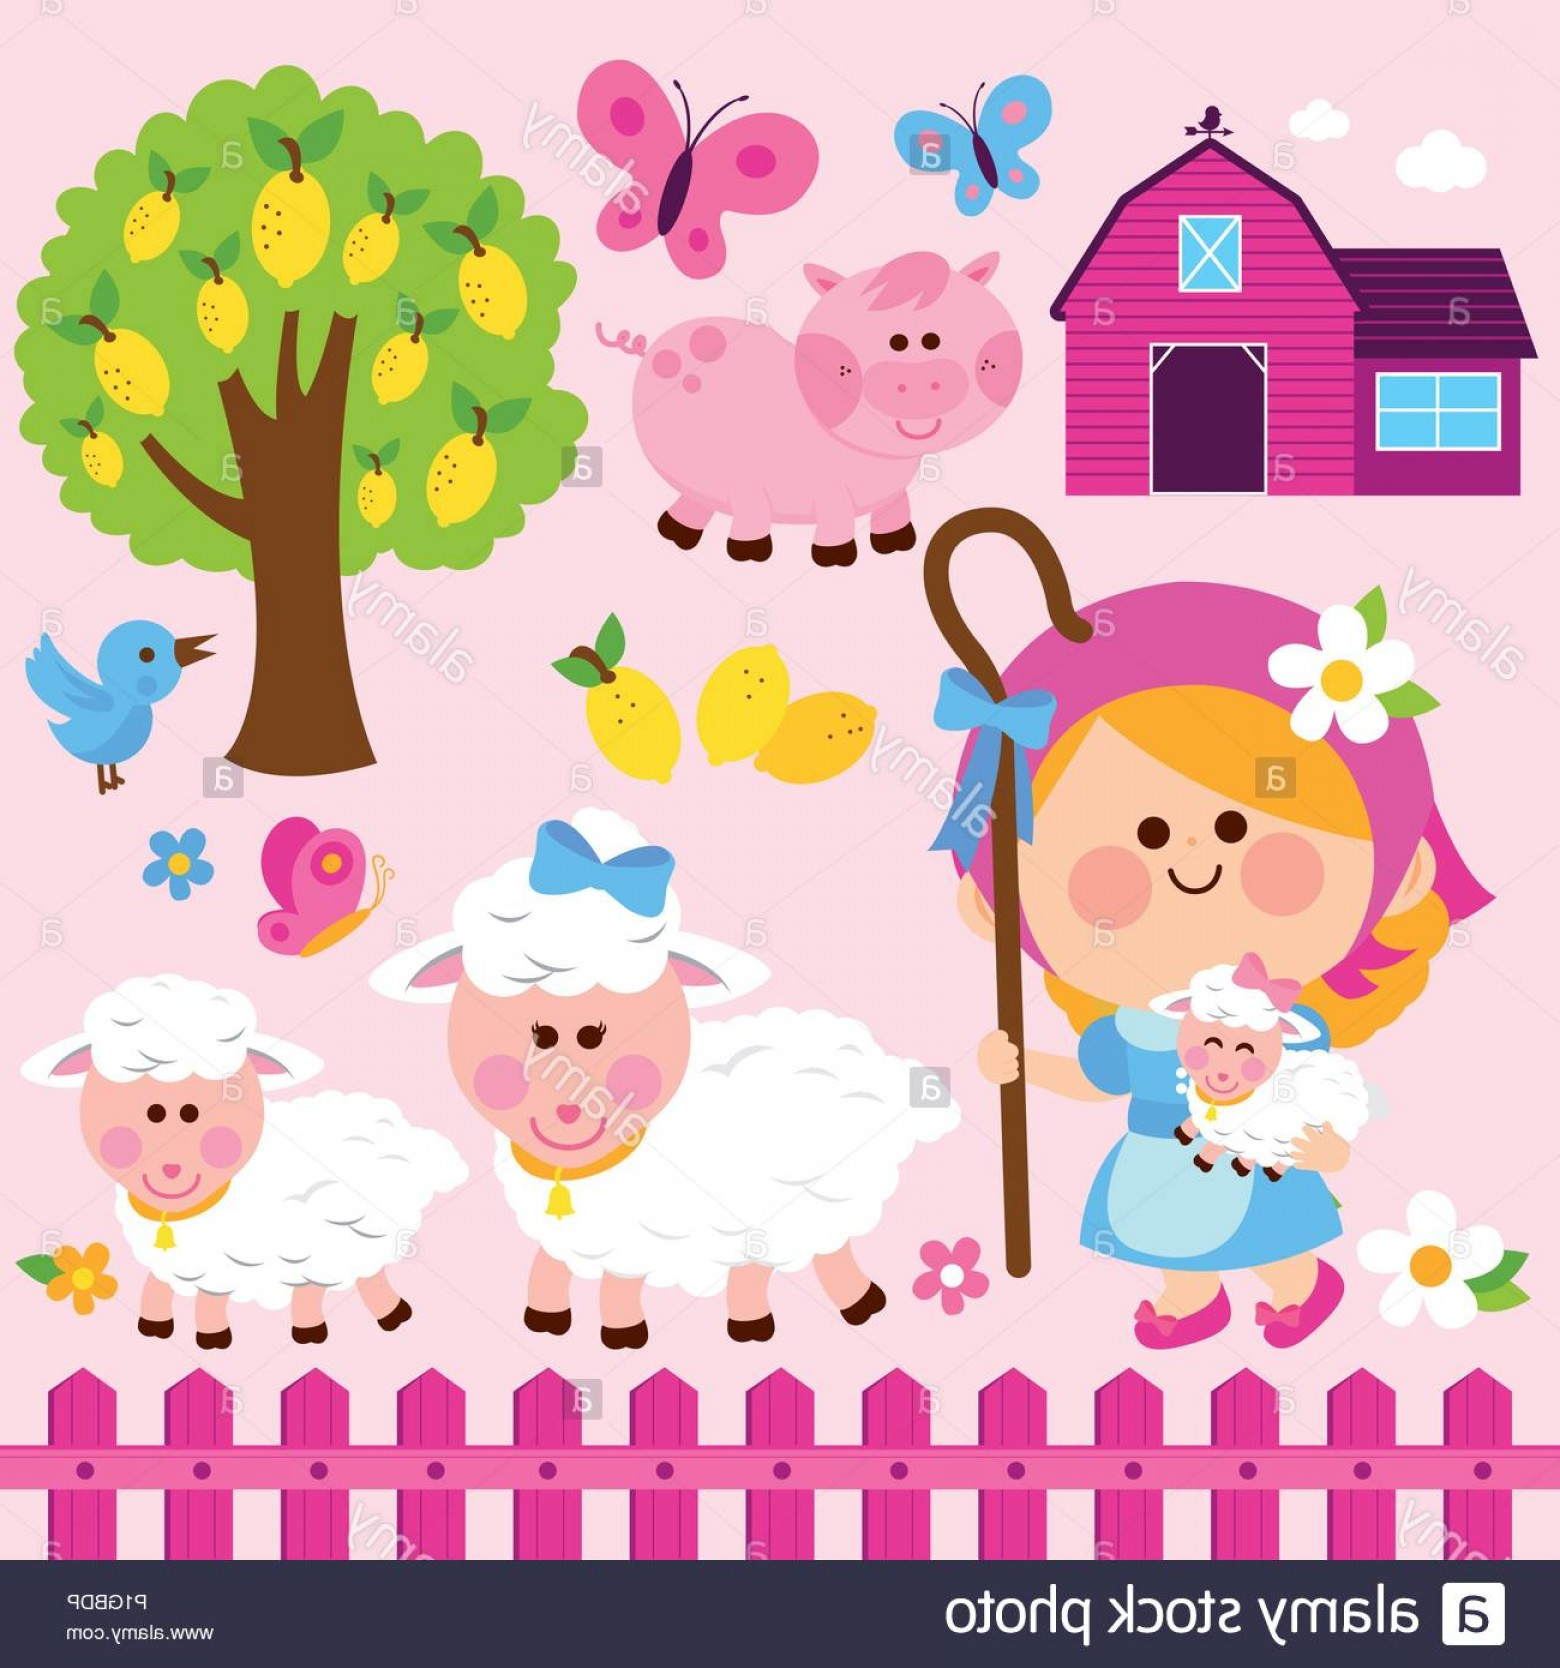 Farm Vector Illustration: Shepherdess Girl And Animals At The Farm Vector Illustration Collection Image